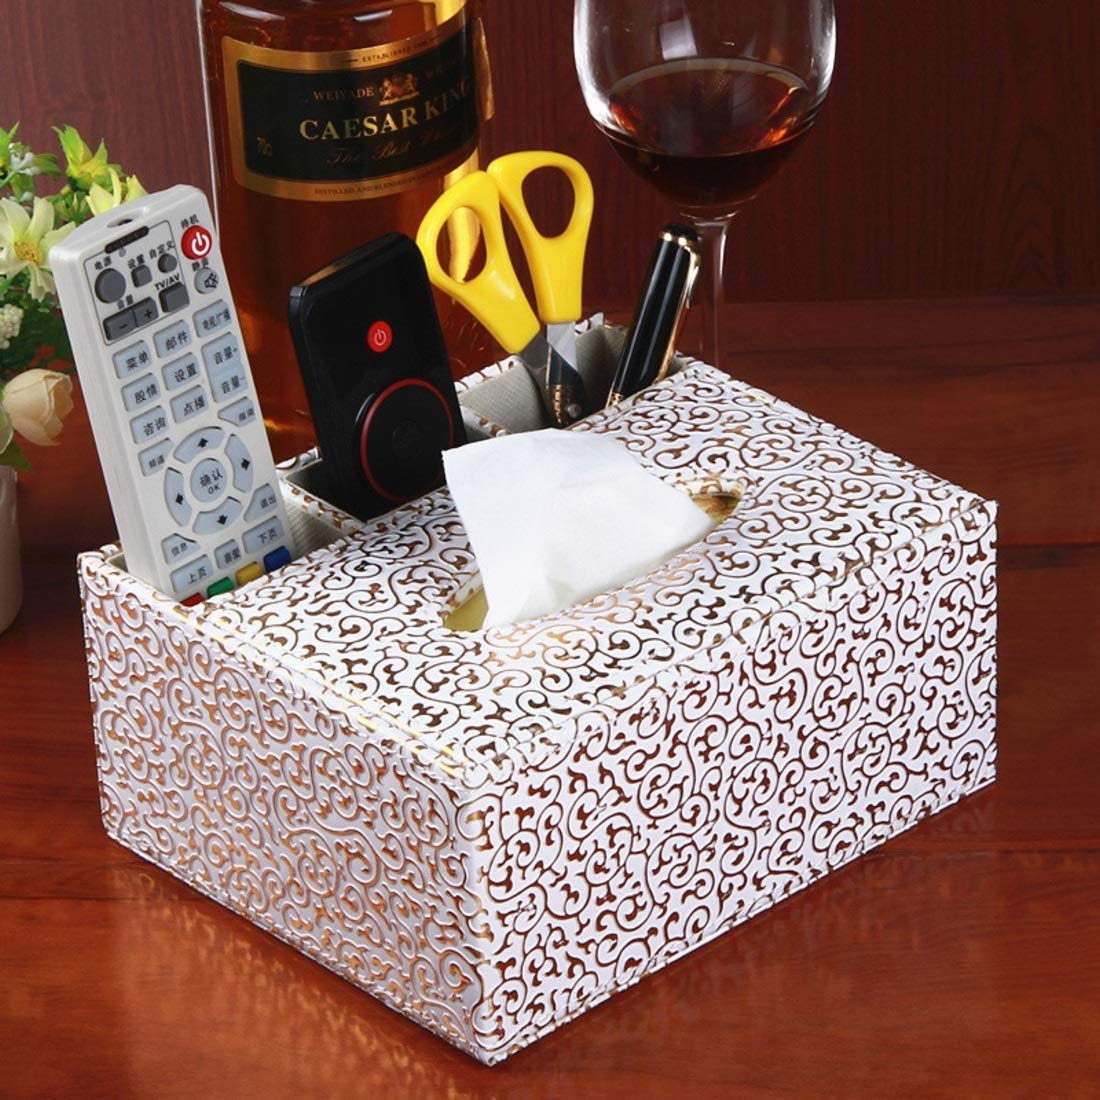 XIAMEND Creative Home Multi-Purpose Trays European-Style Tissue Boxes Room Bedside Storage (Color : Golden Carved) by XIAMEND